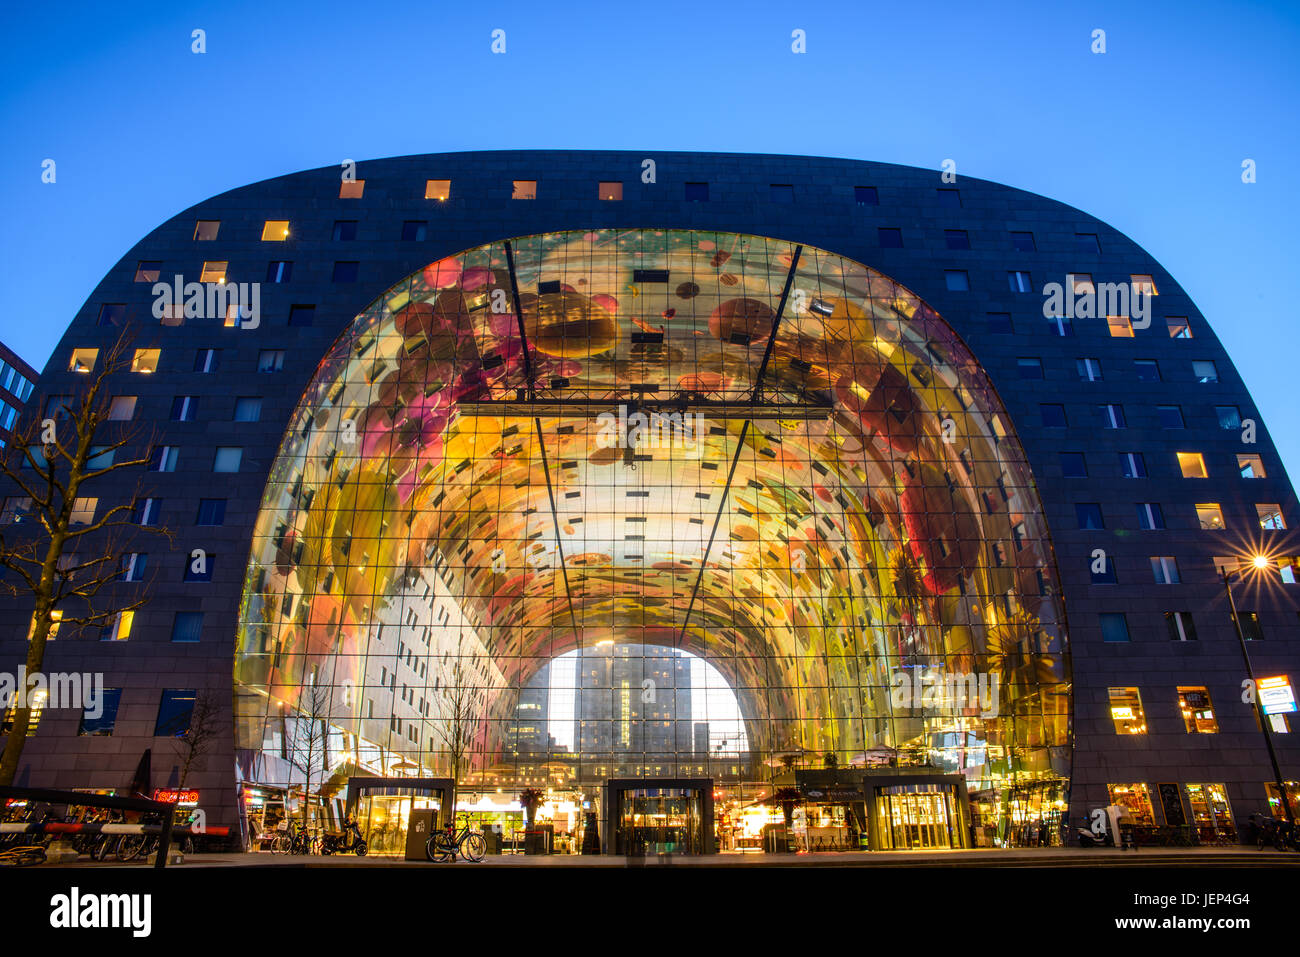 Exterior Night View Of The New And Colored Market Hall (Markthal In Dutch),  Located In The Blaak District In Rotterdam,